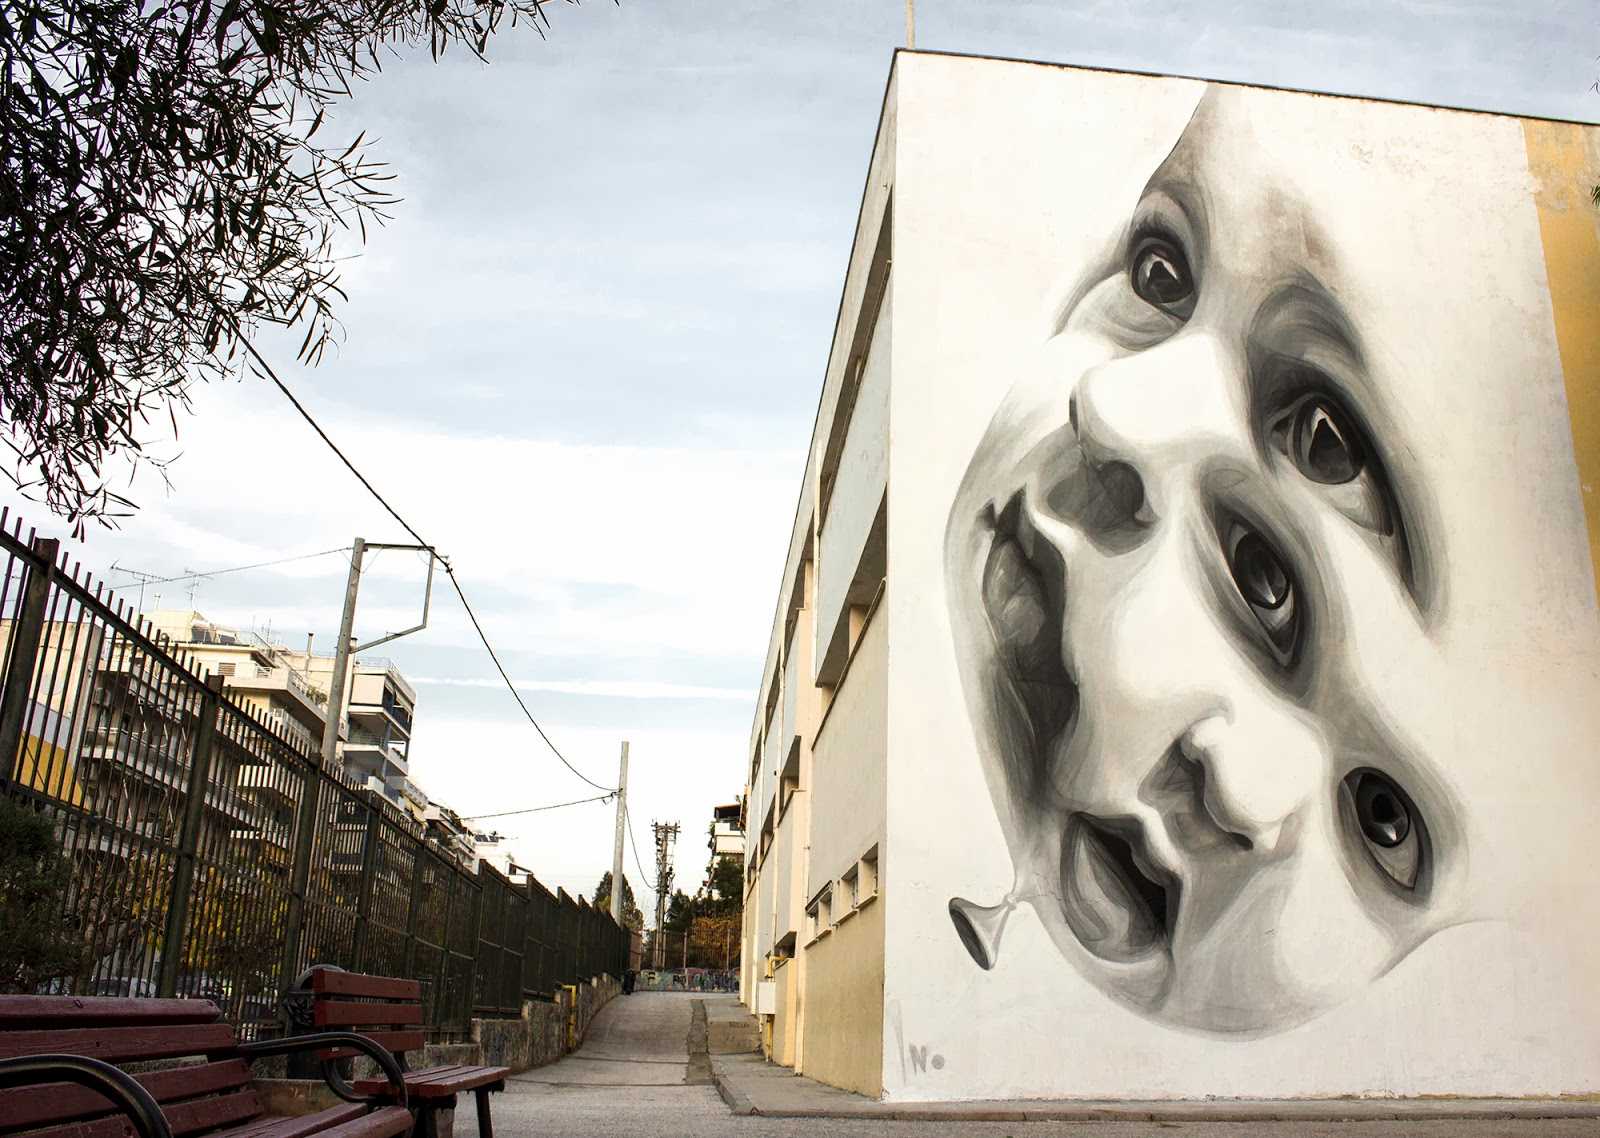 ino-future-new-mural-athens-greece-01